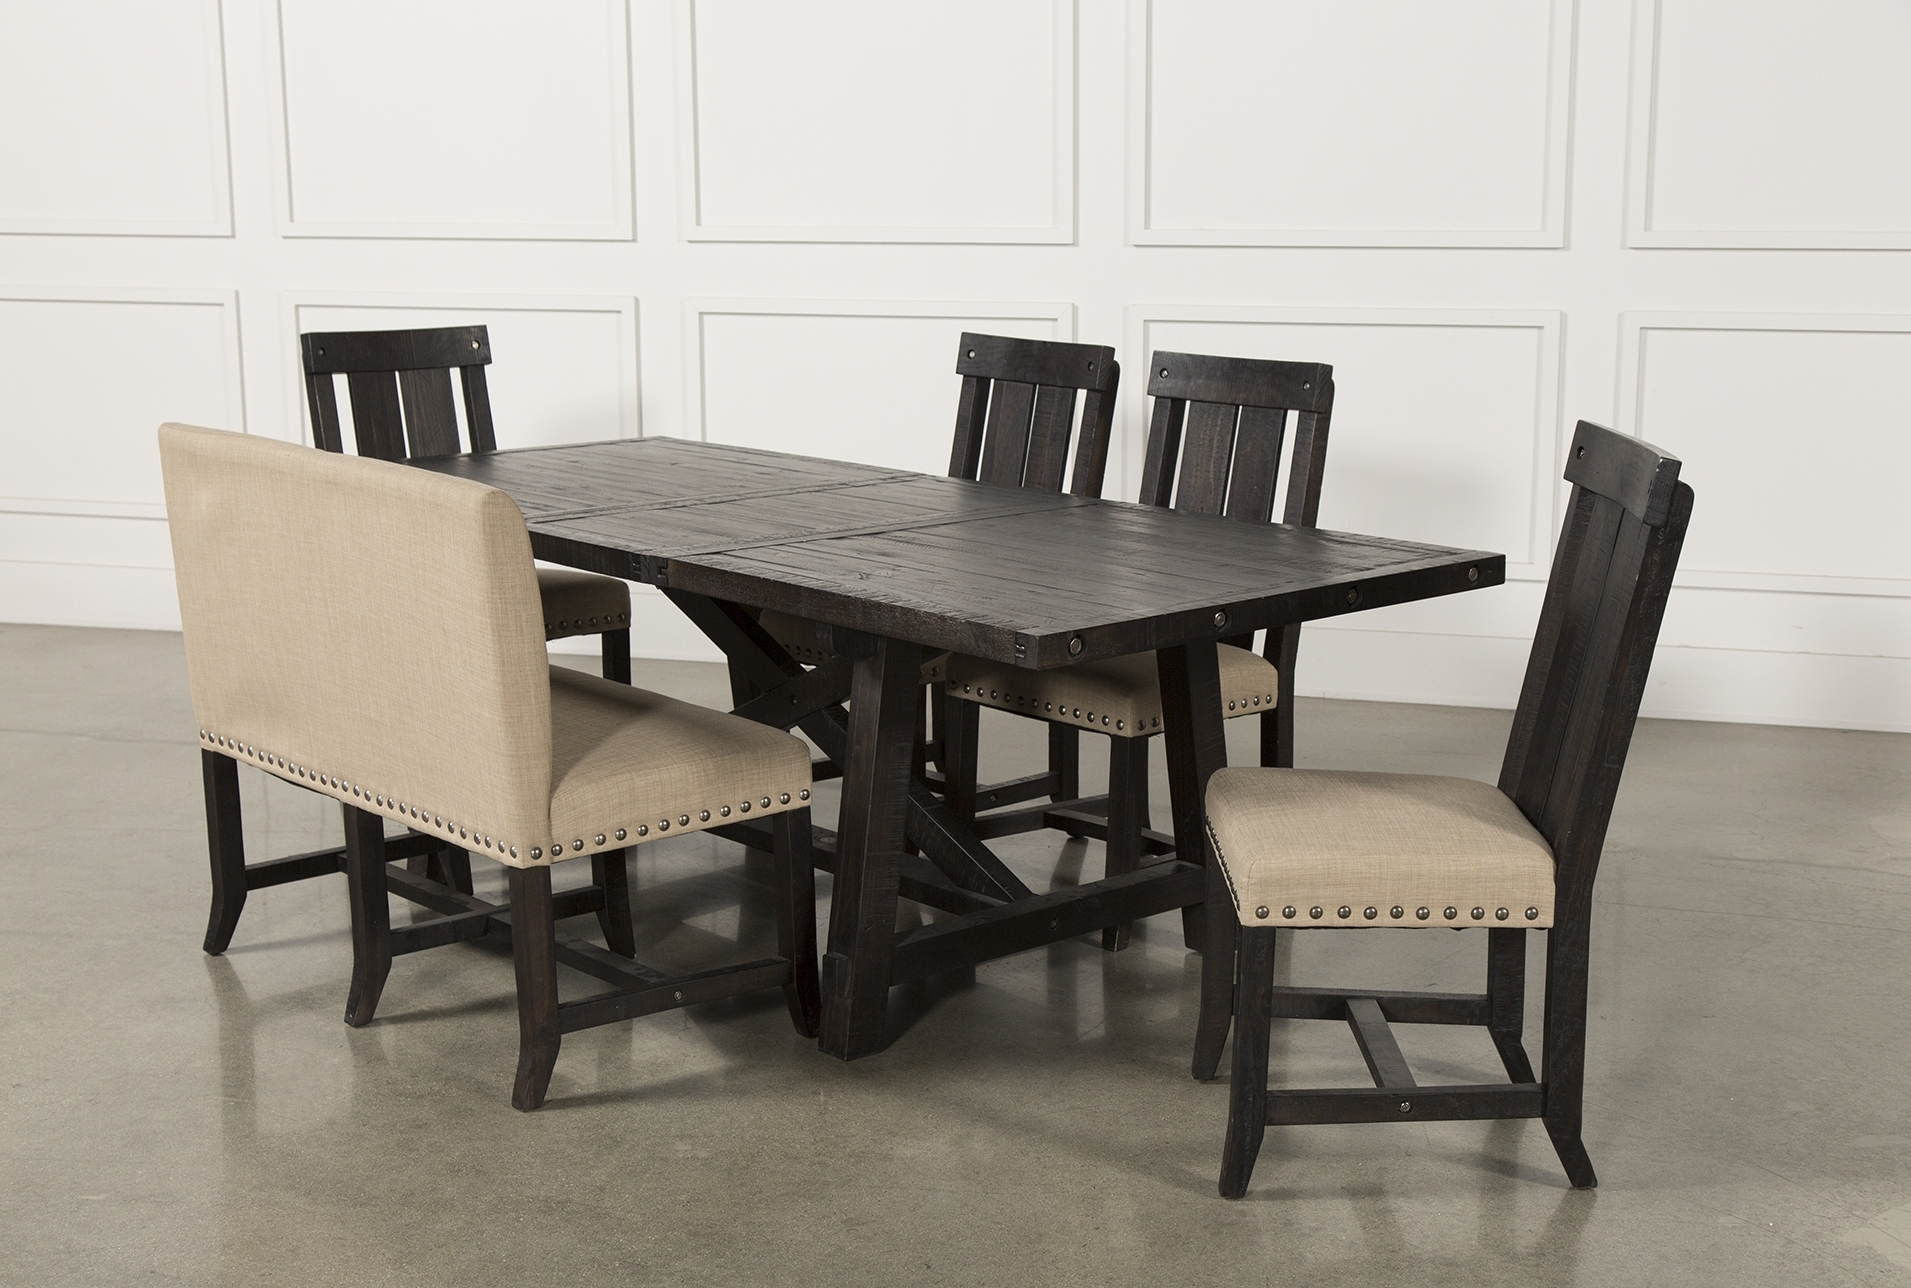 Most Current Jaxon 7 Piece Rectangle Dining Sets With Upholstered Chairs With Regard To Jaxon 6 Piece Rectangle Dining Set W/bench & Wood Chairs (Gallery 13 of 25)